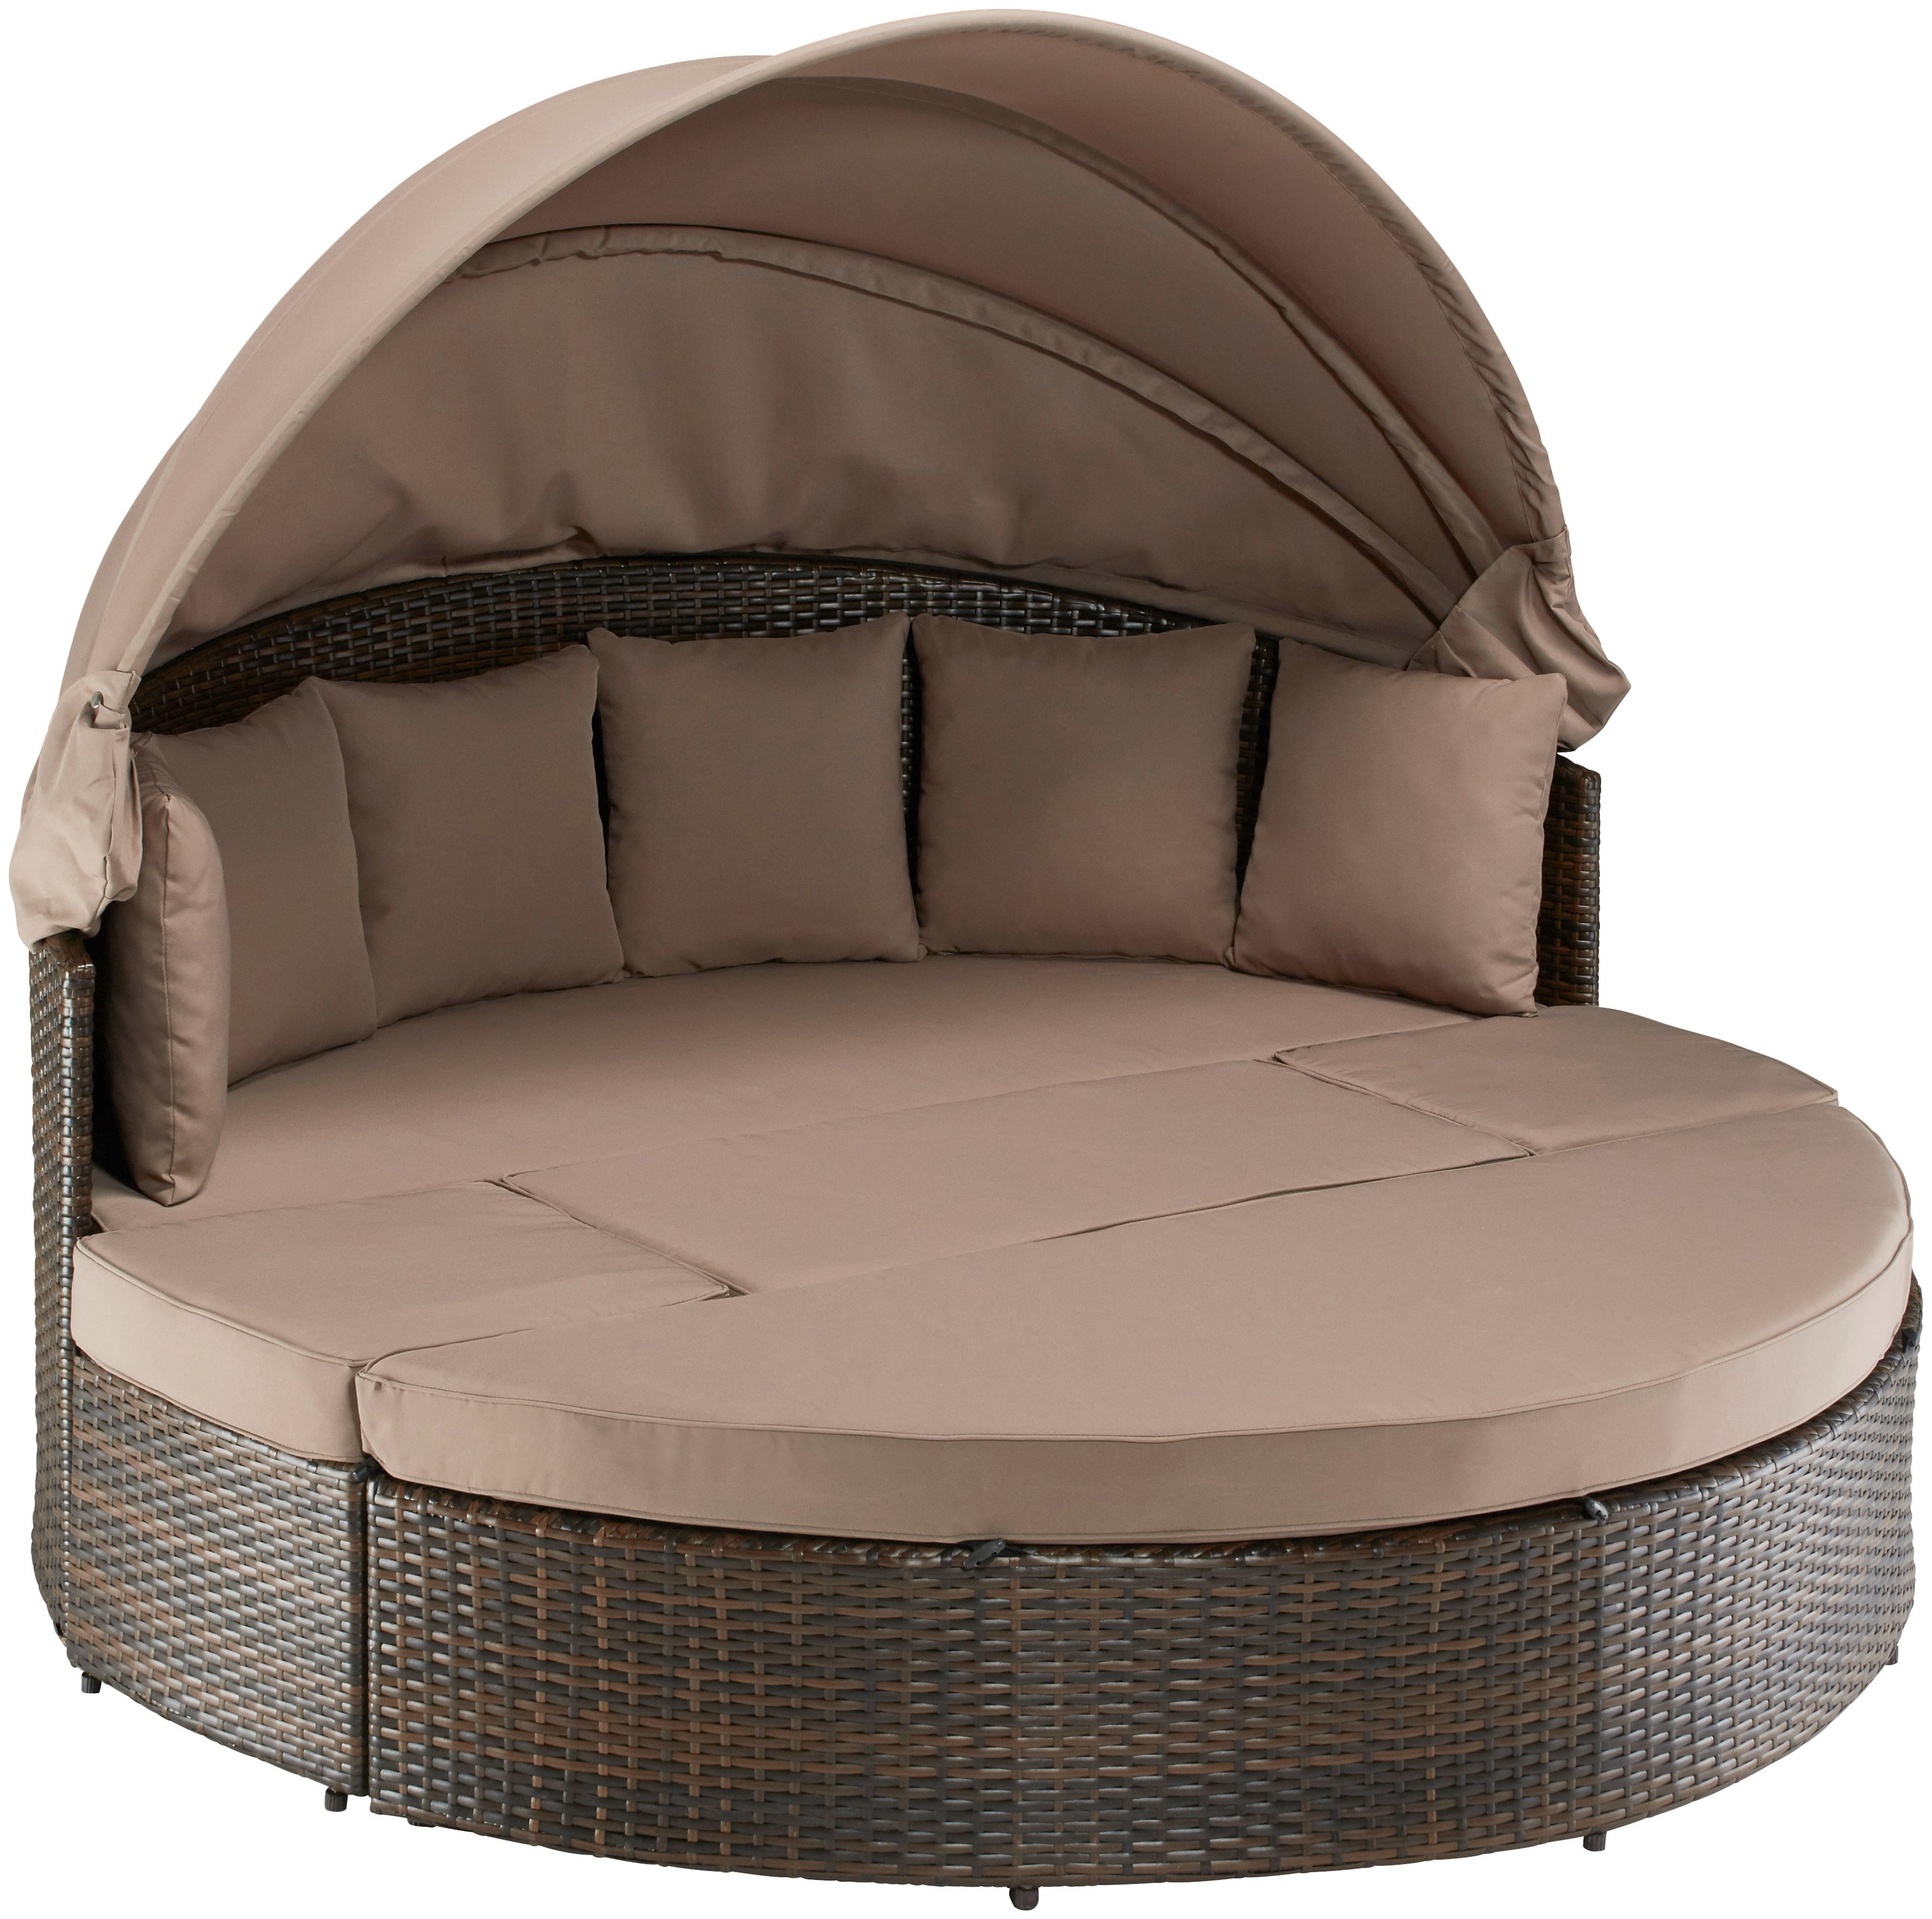 Loungebed Tuin Rond.Loungebed Multifunctioneel Bed Riva Poly Rotan